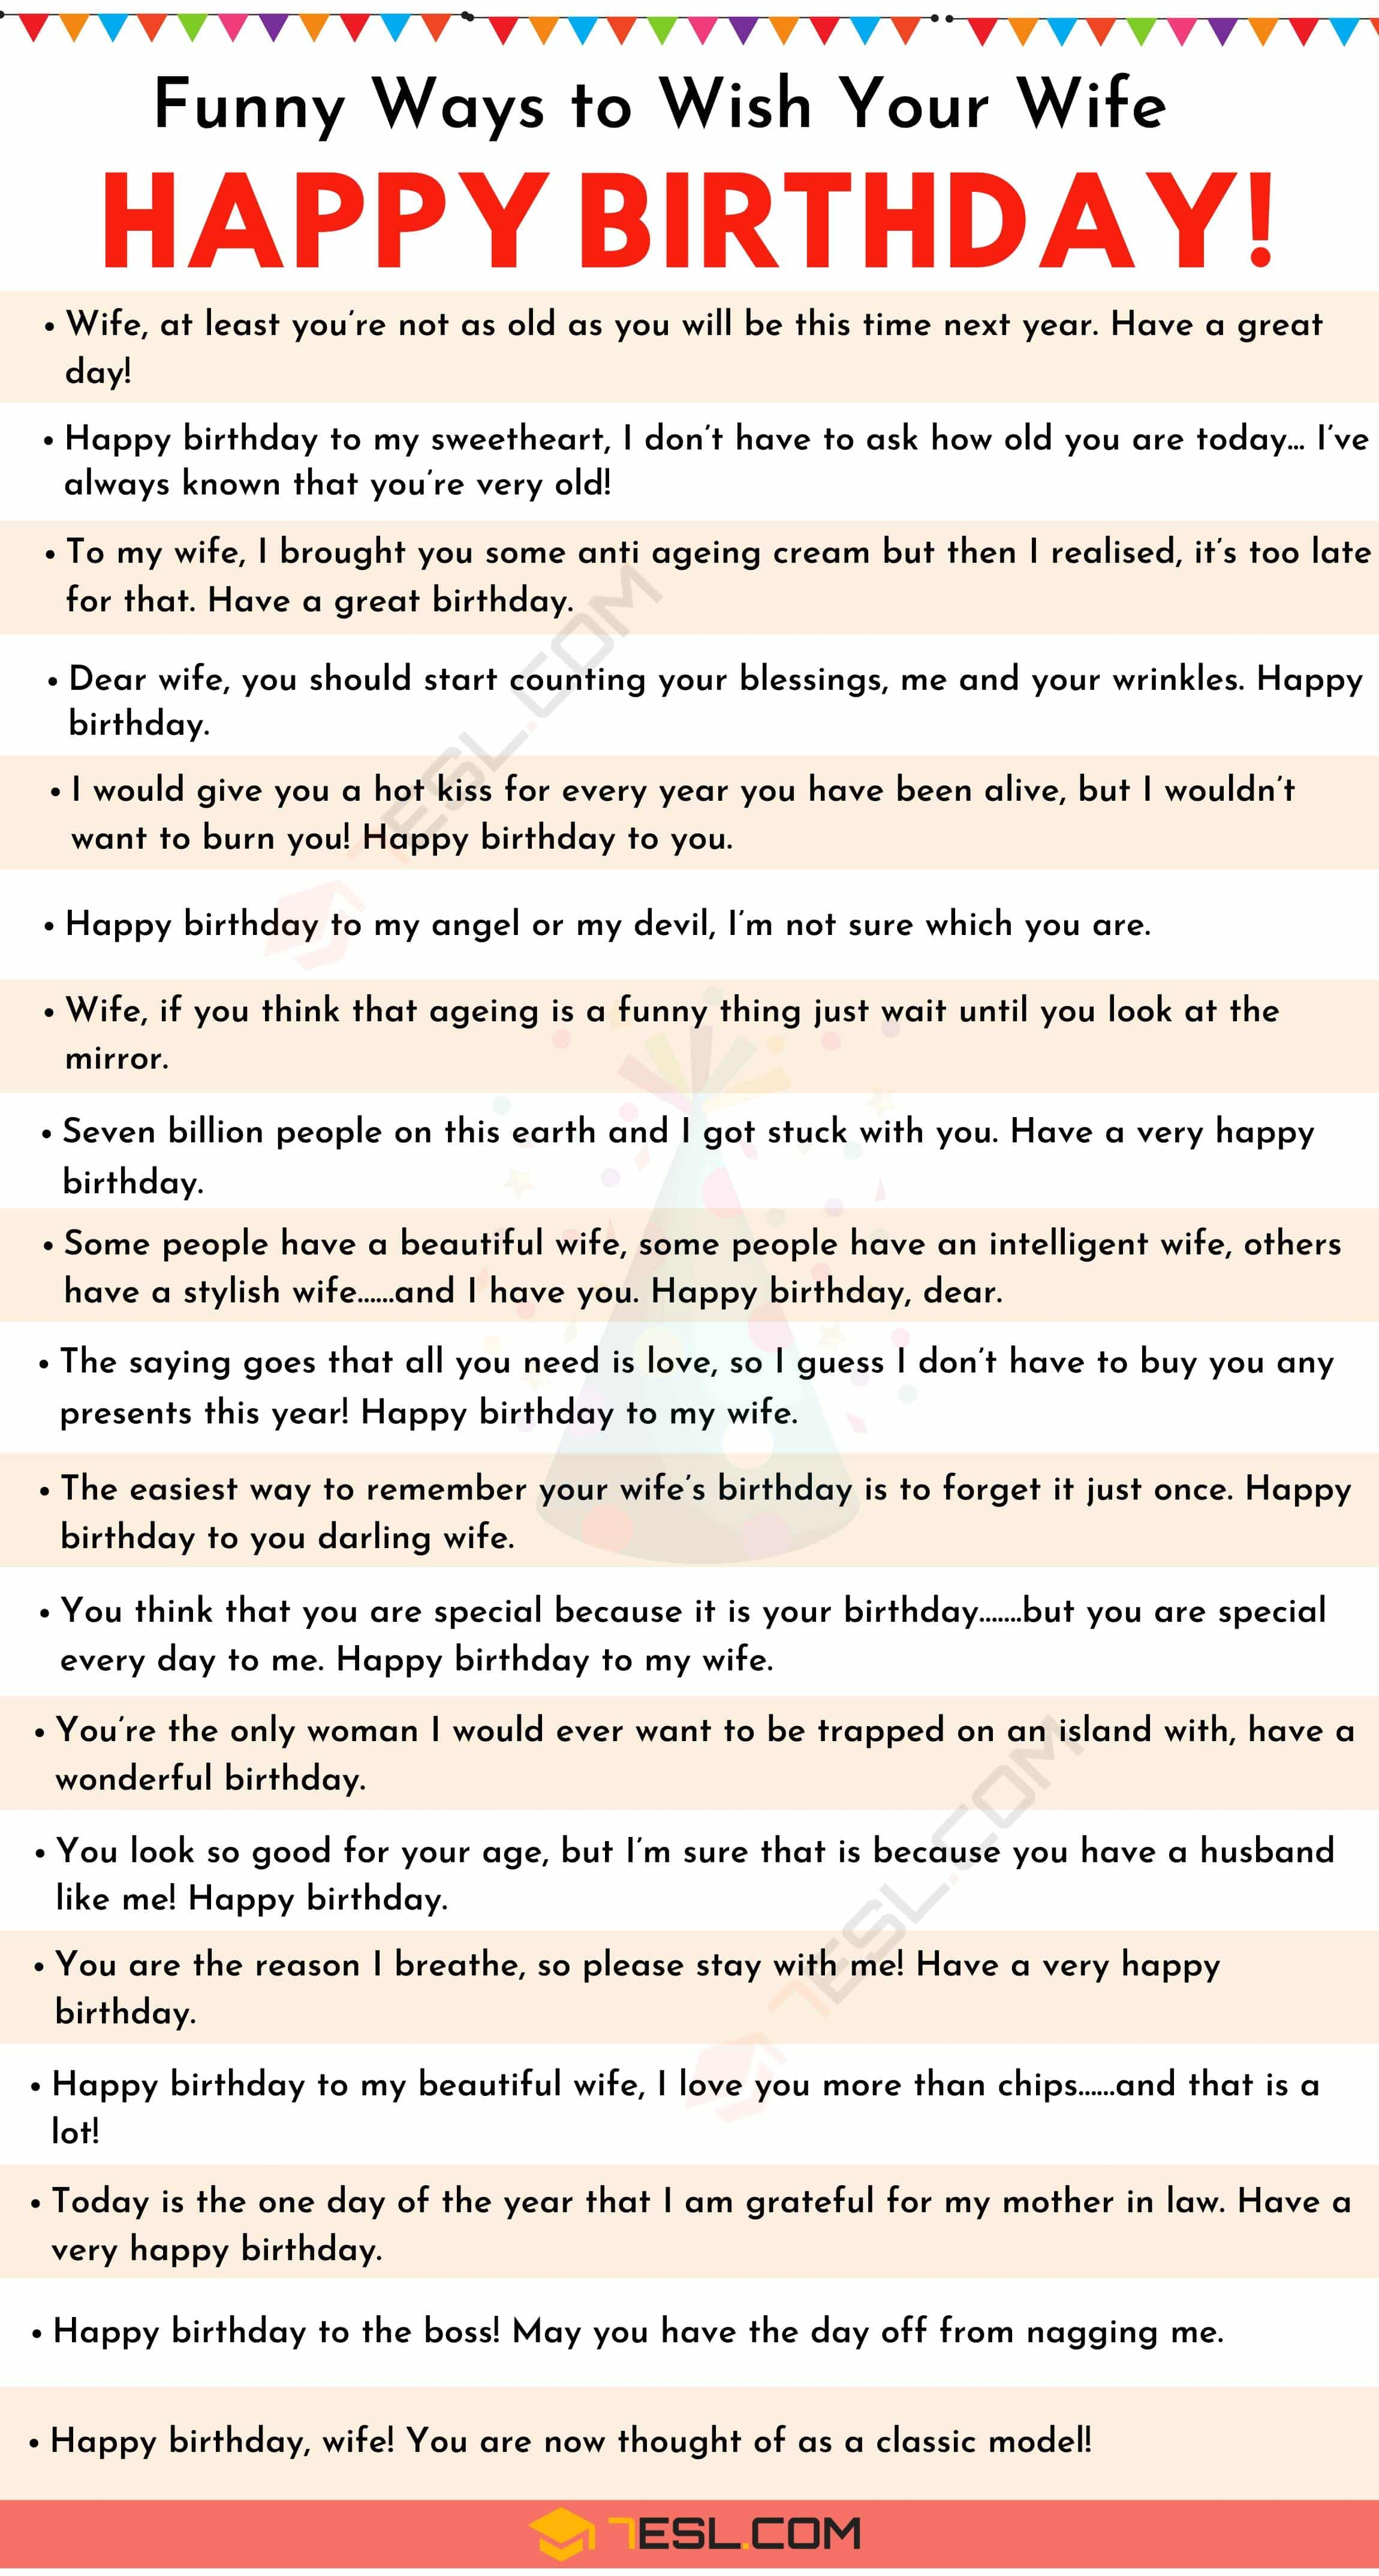 Happy Birthday Wife: 35+ Sweet and Funny Birthday Wishes for Wife